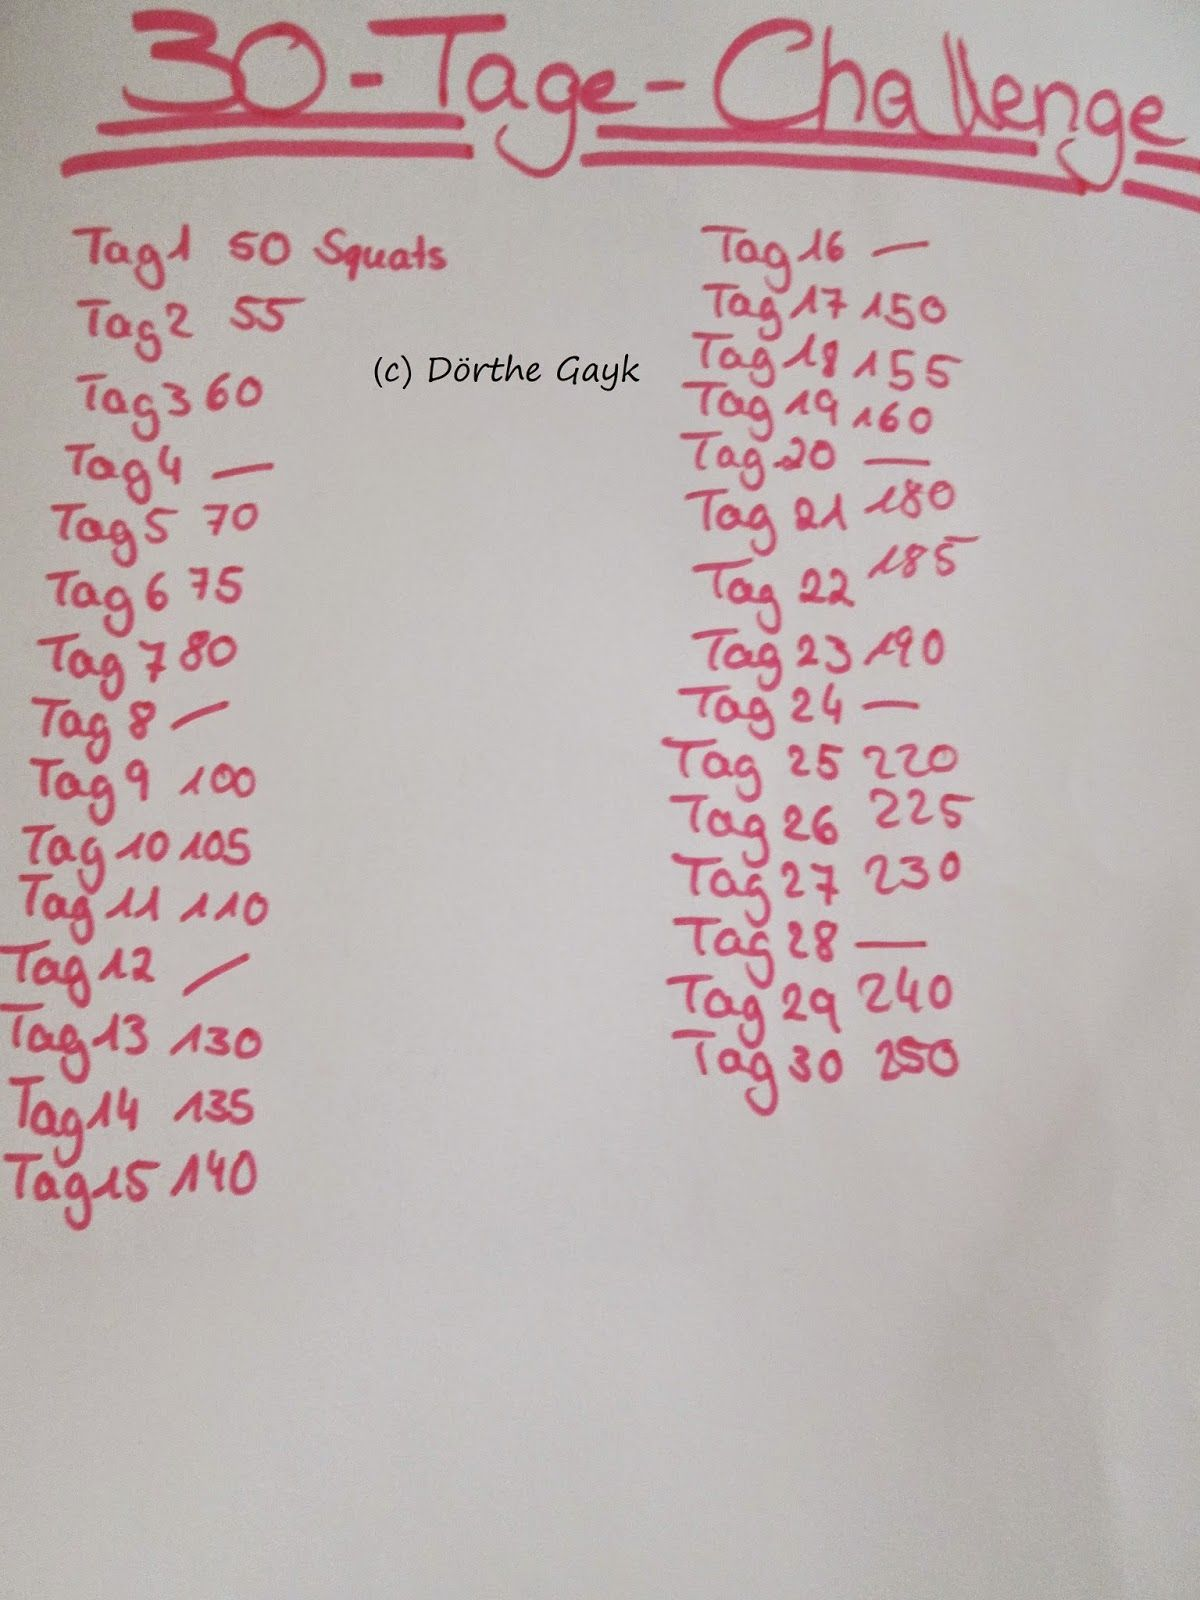 Beauty & Fashion & More: [More] Workout Challenge